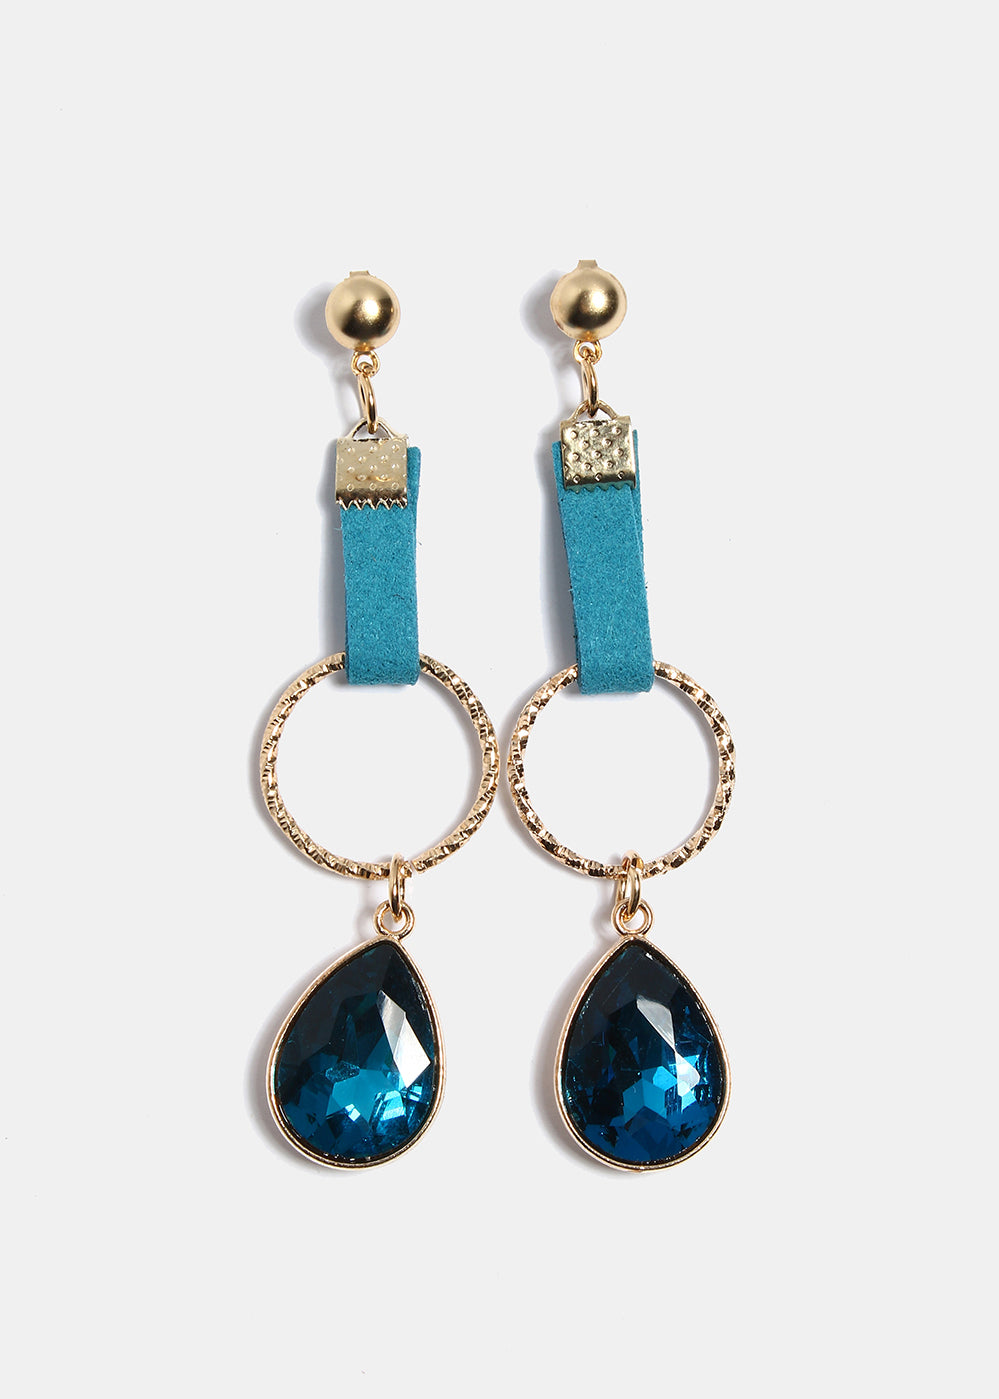 gem earrings sorrelli jewelry products in store clearance gold vermeil abstract earring